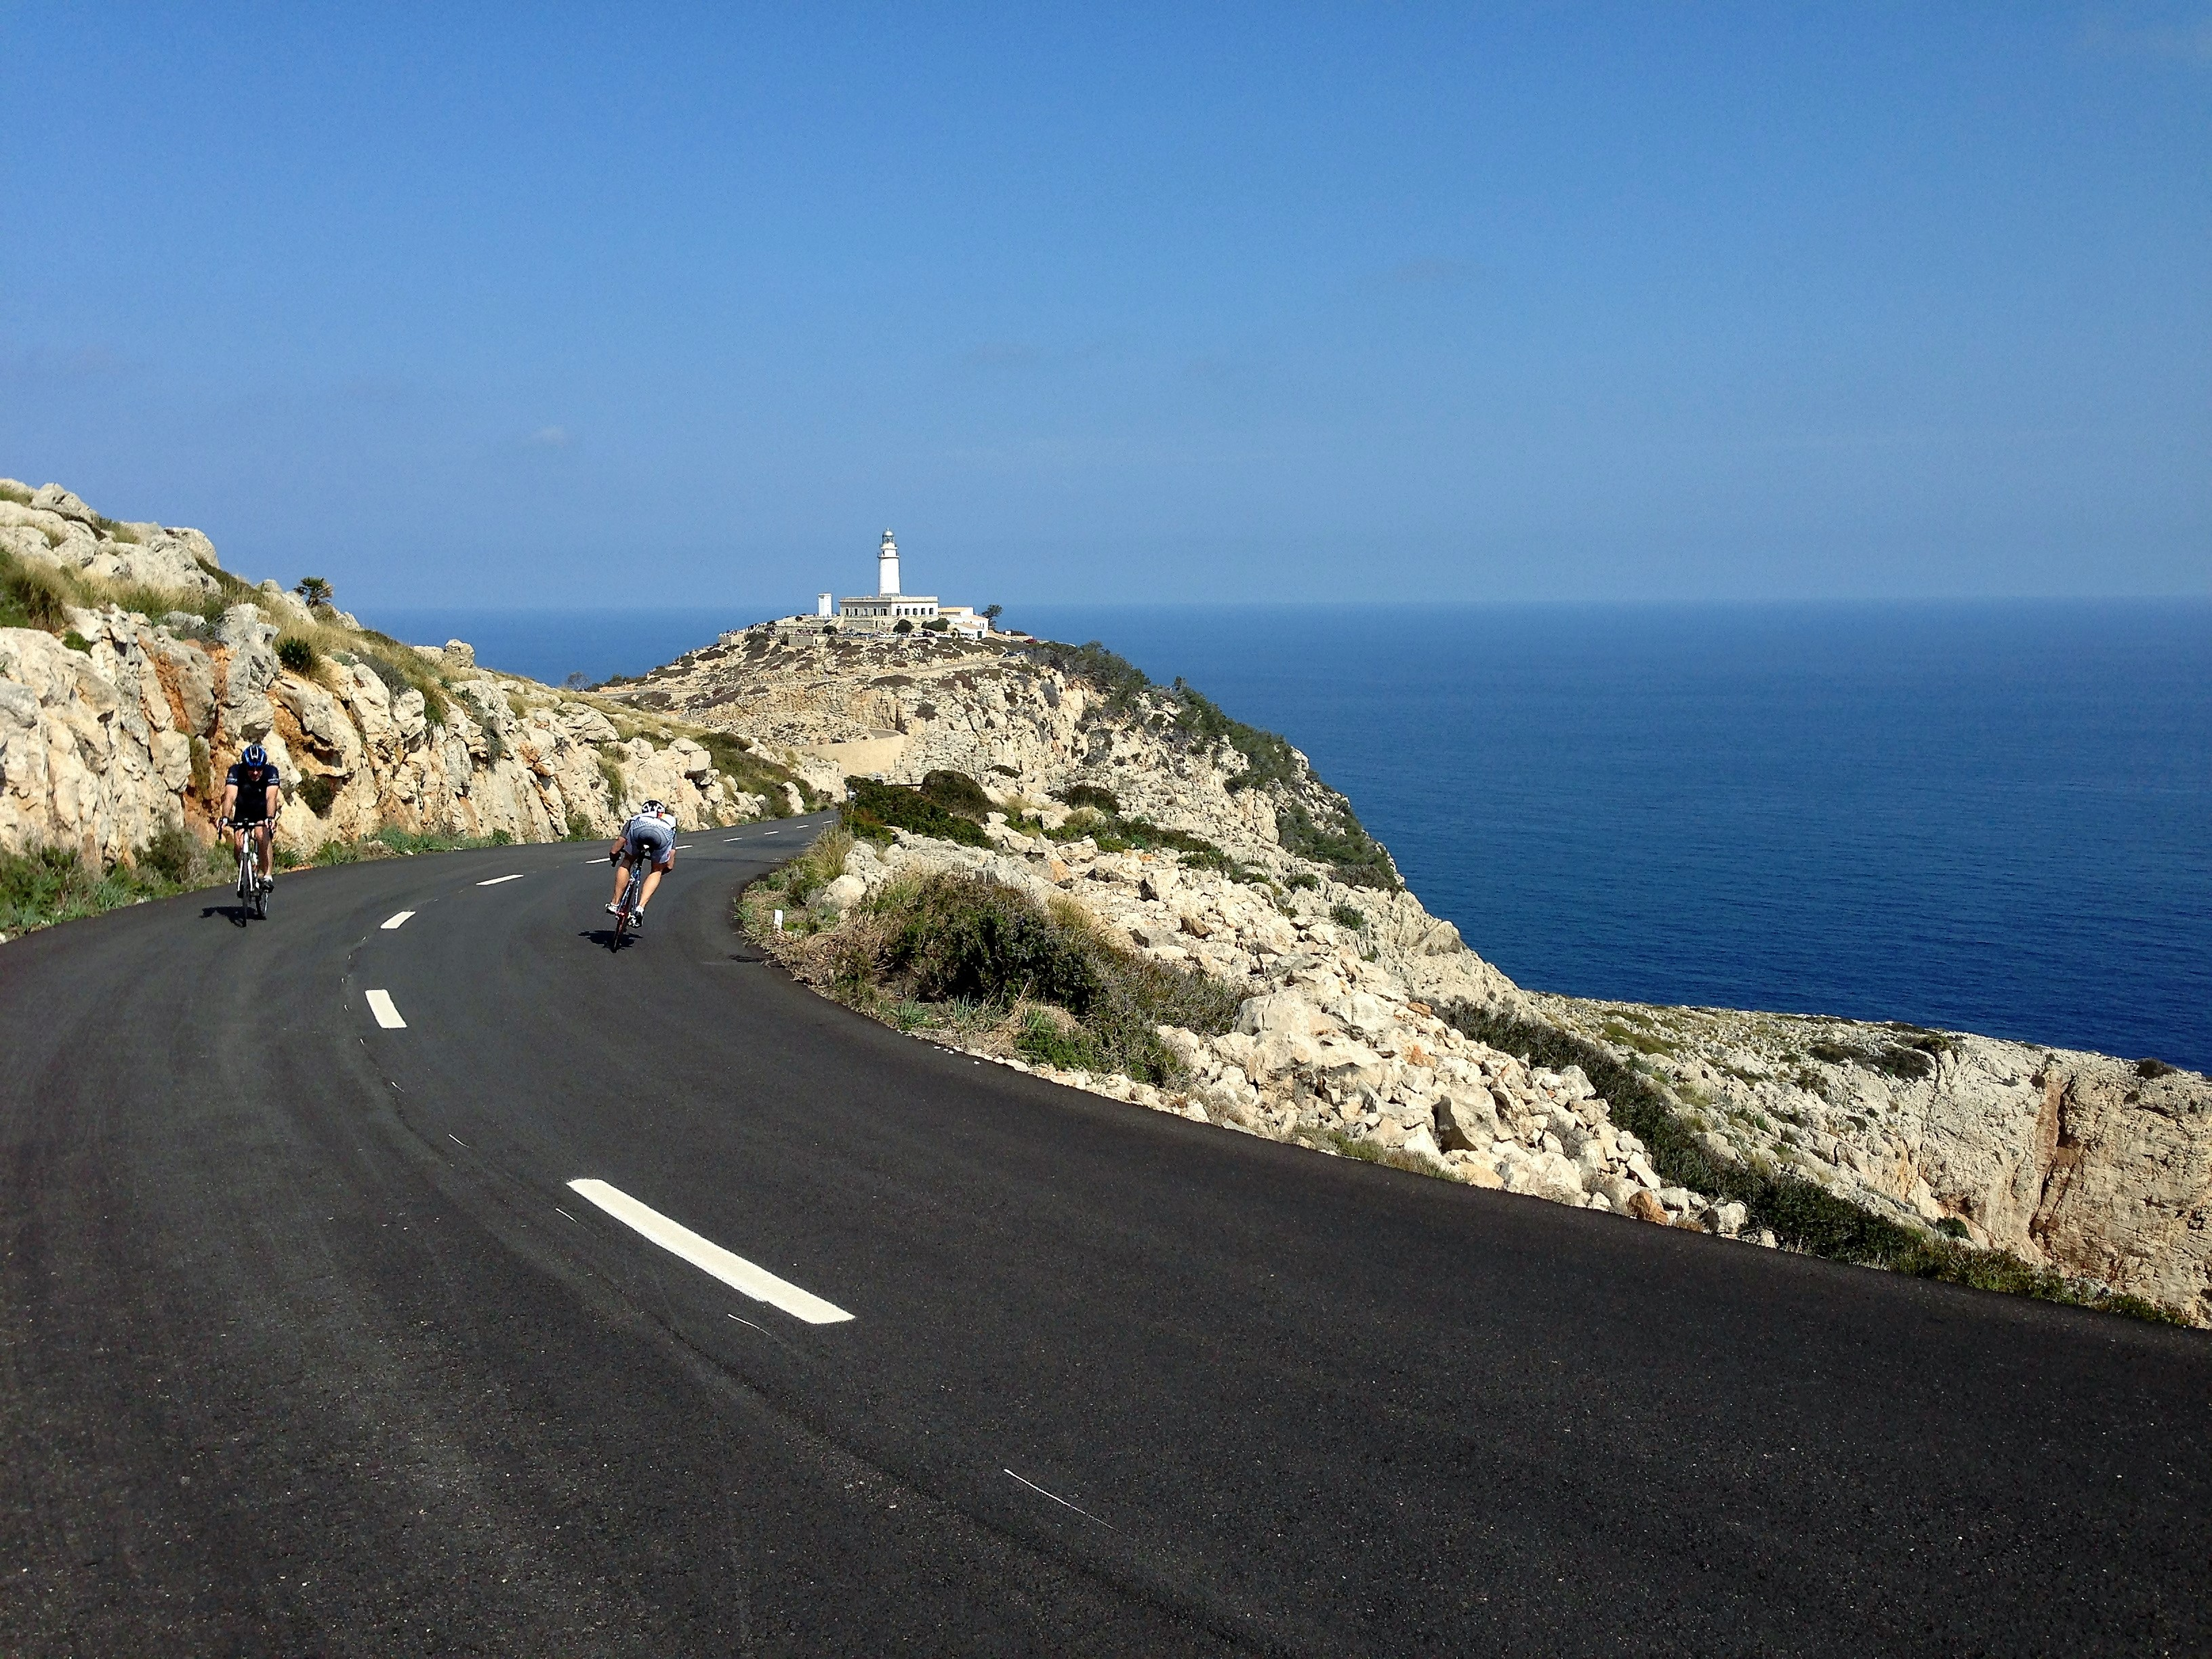 cyclists riding at cycling camp near Formentor Lighthouse